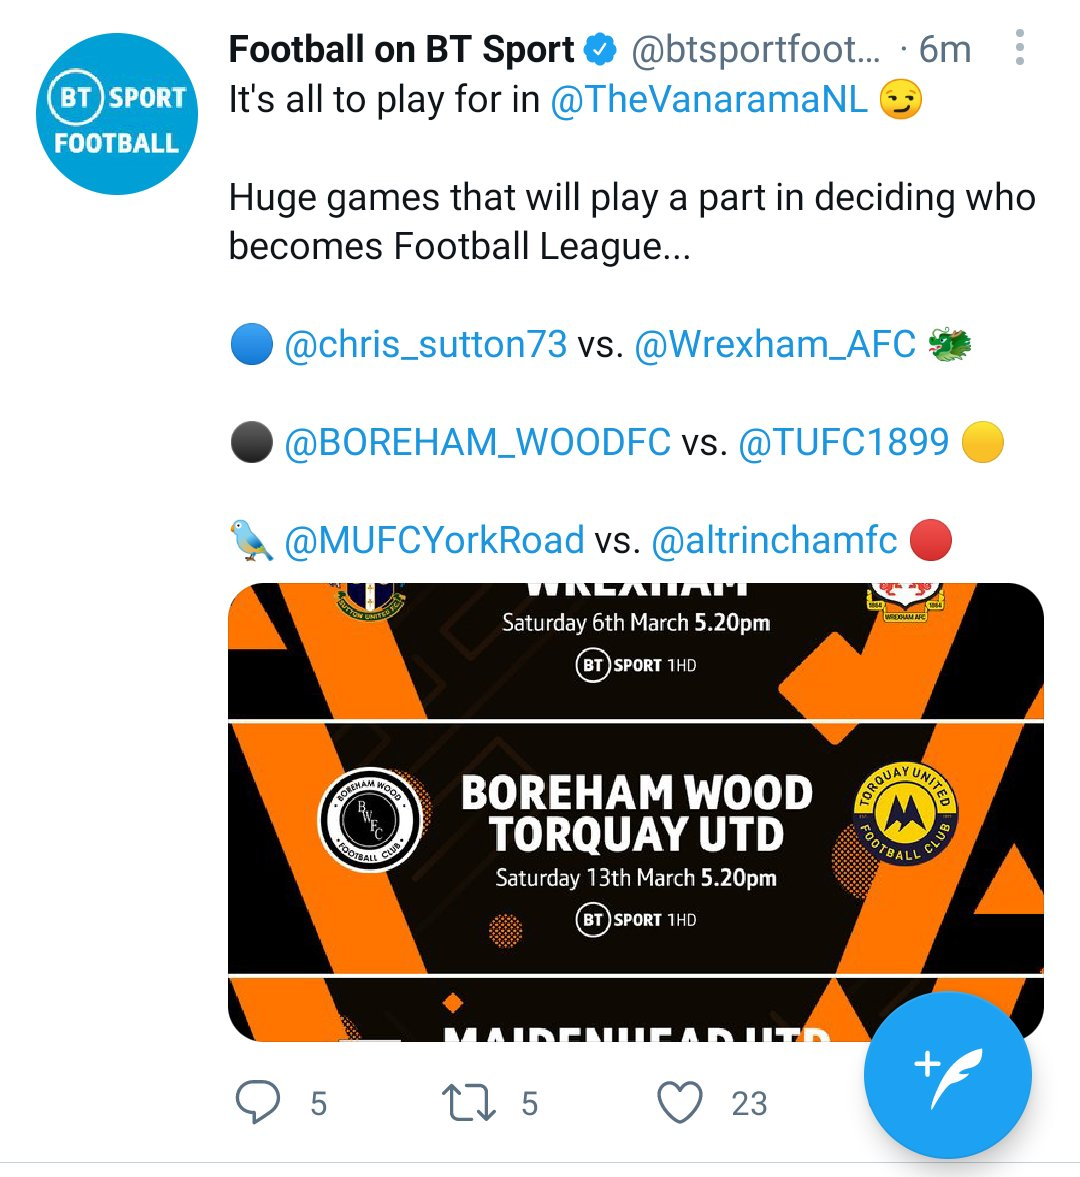 Blimey ! That first game is a little one sided. Especially given Chris Suttons' age ! 😱😱😱 @btsportfootball @chris_sutton73 @Wrexham_AFC @VancityReynolds